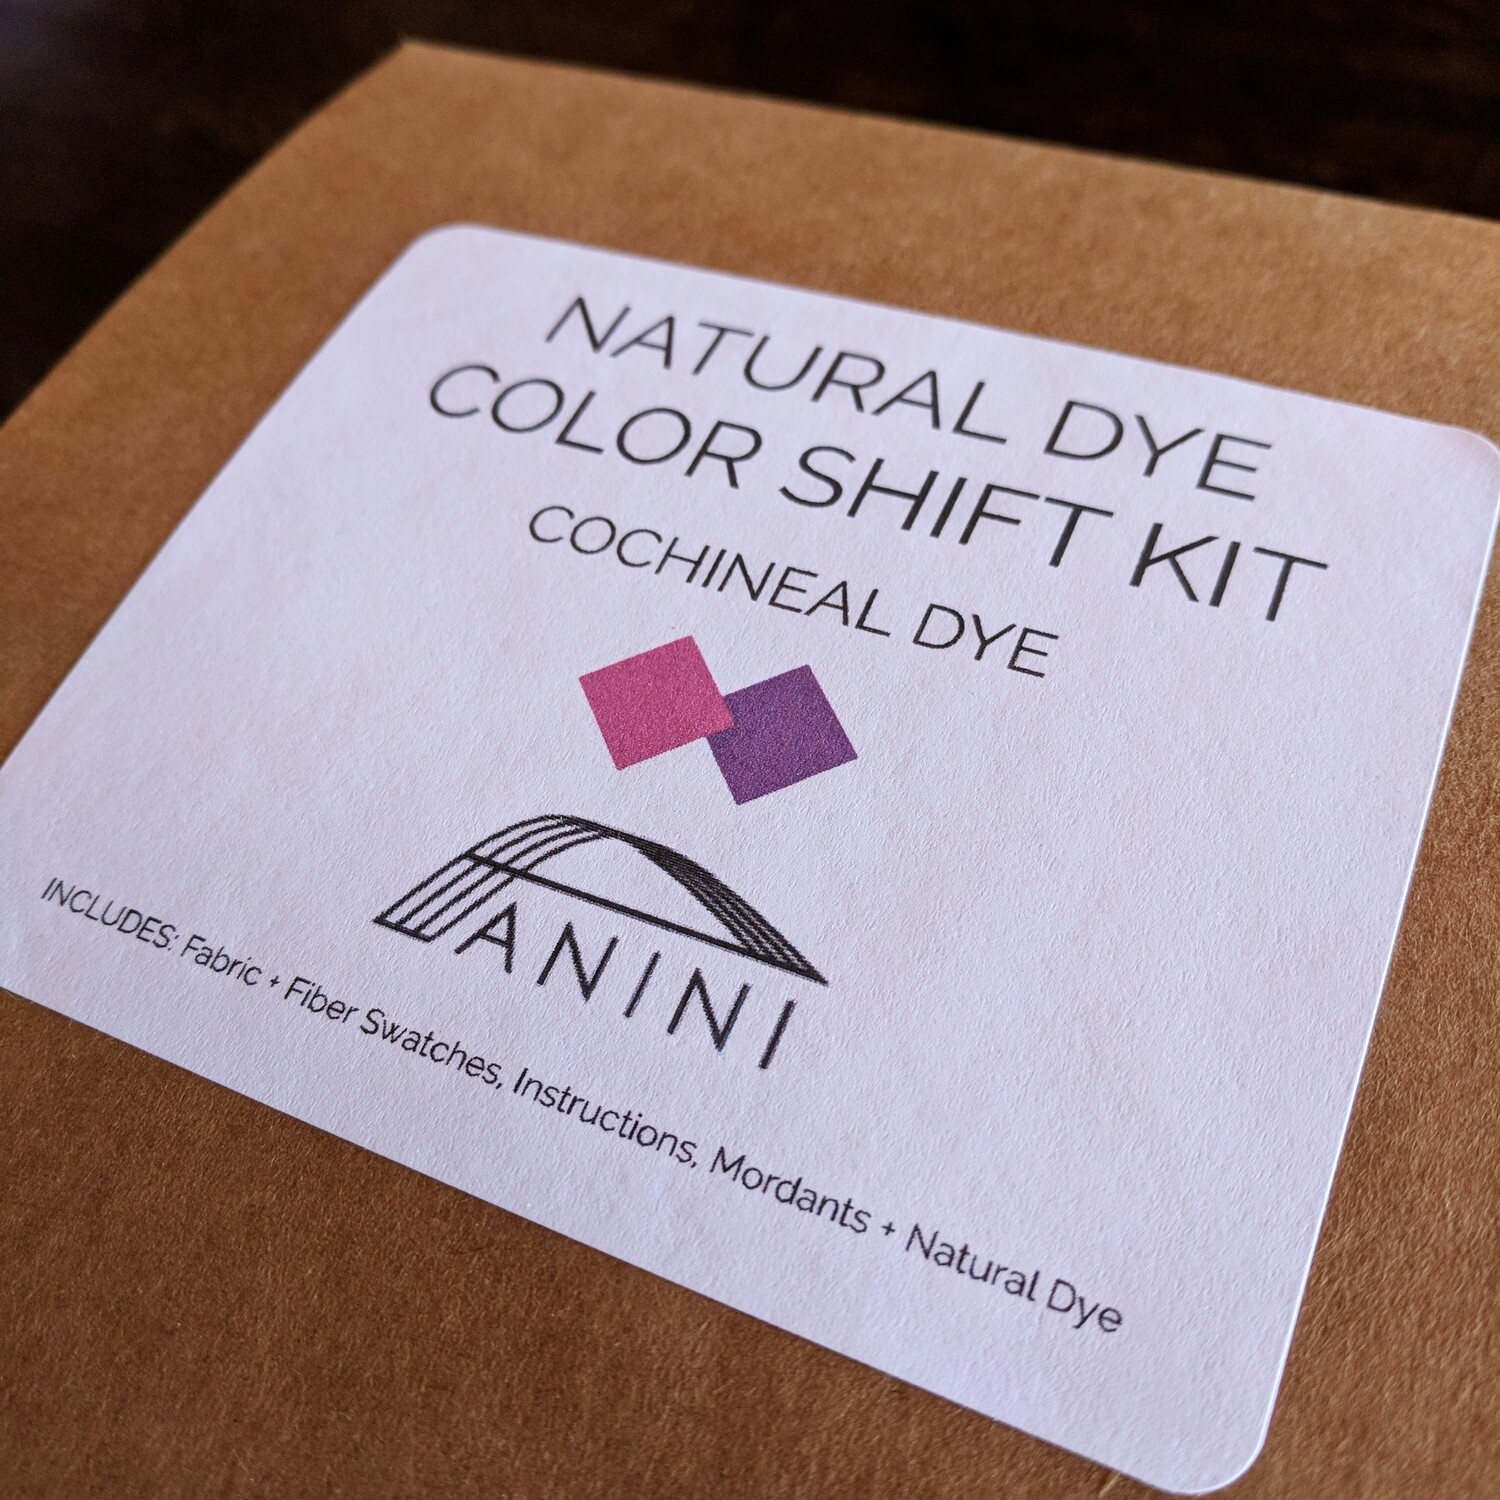 NATURAL DYE - COLOR SHIFT KIT - COCHINEAL